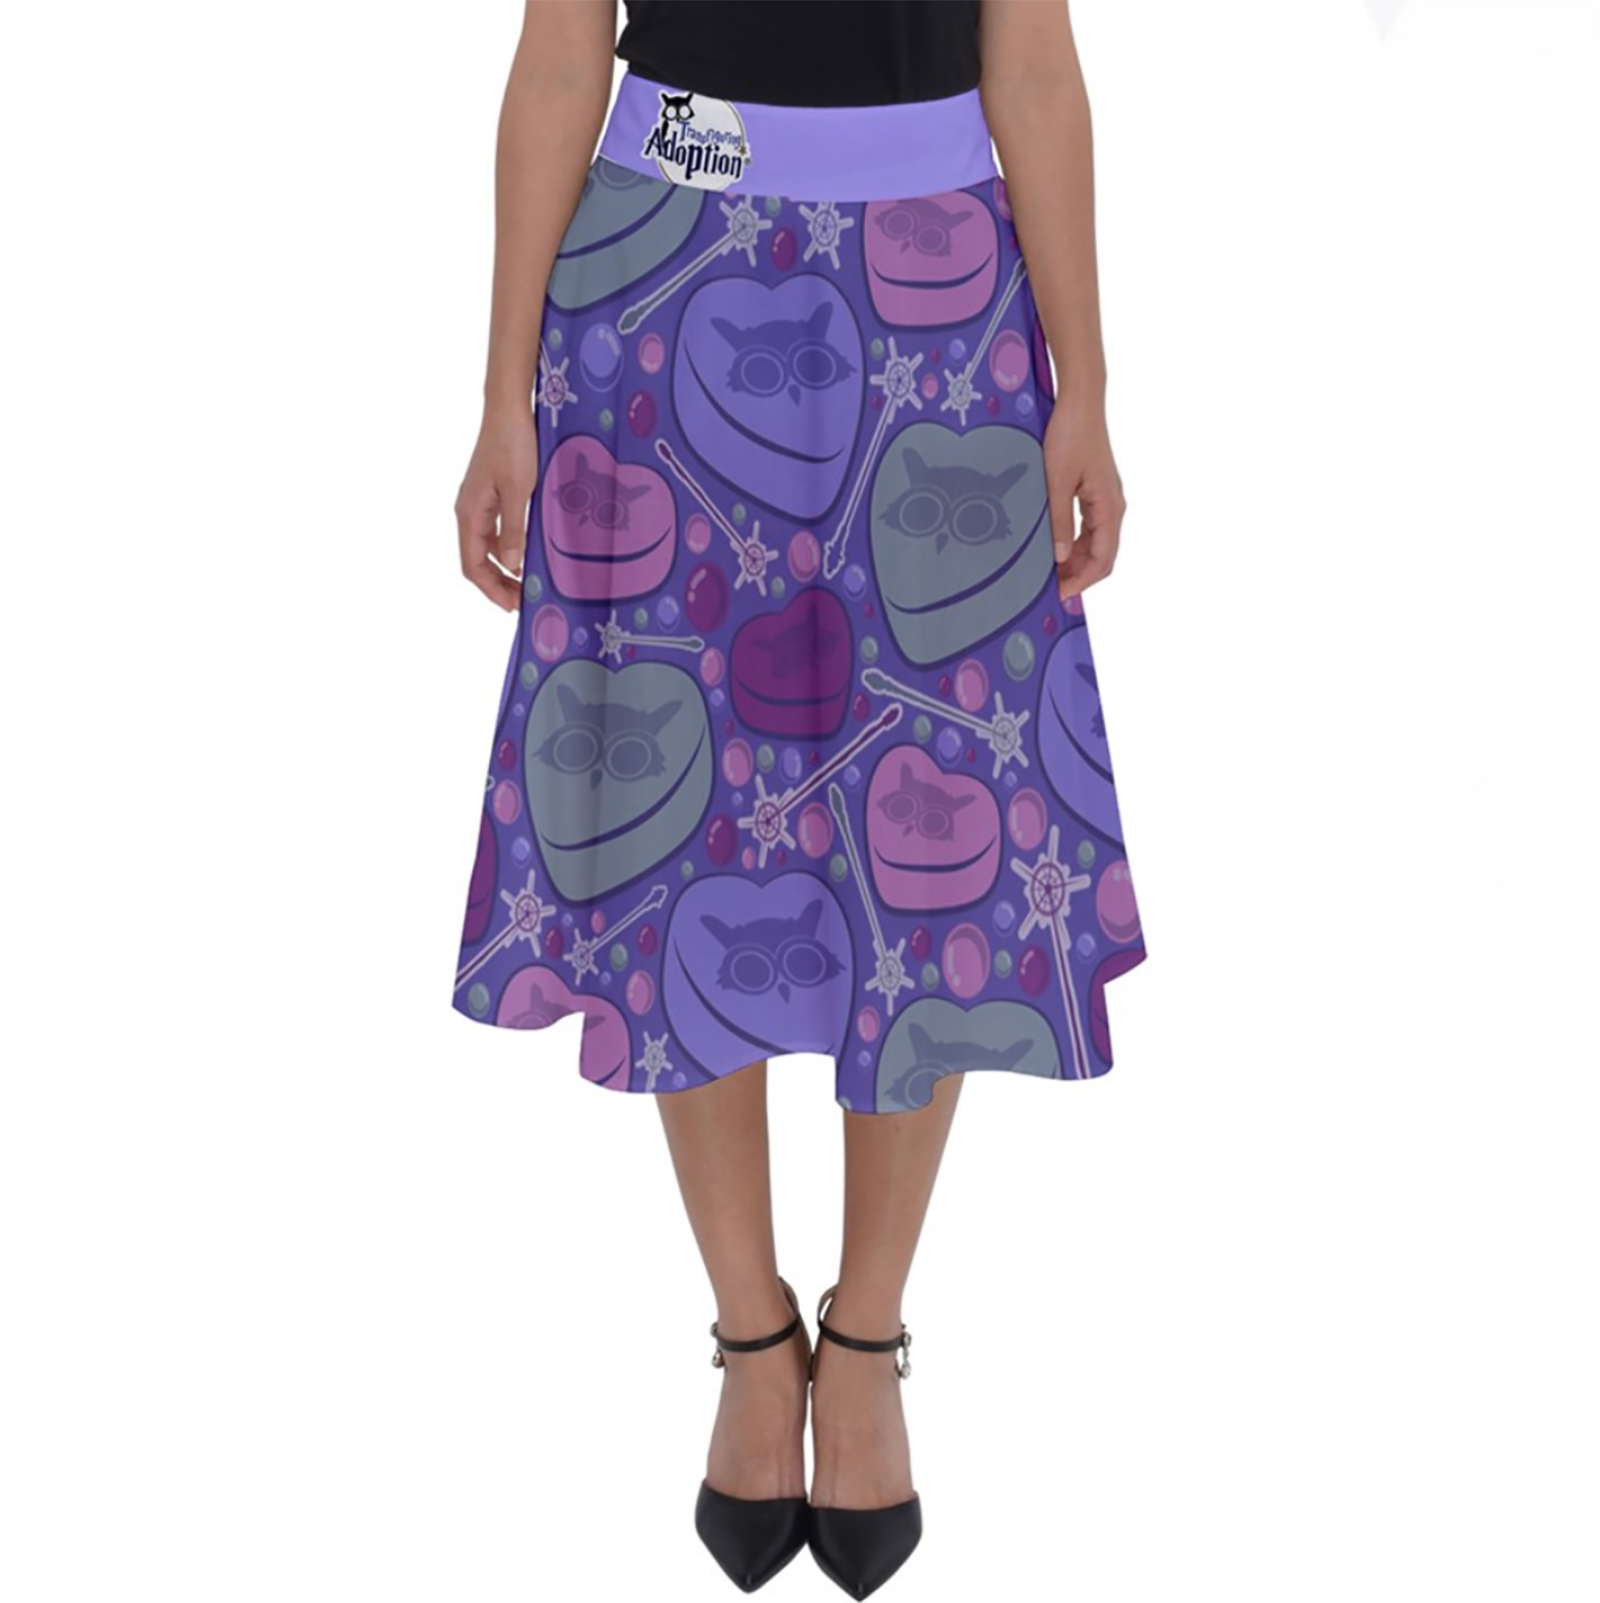 Charmed Perfect Length Midi Skirt (Purple Patterned)